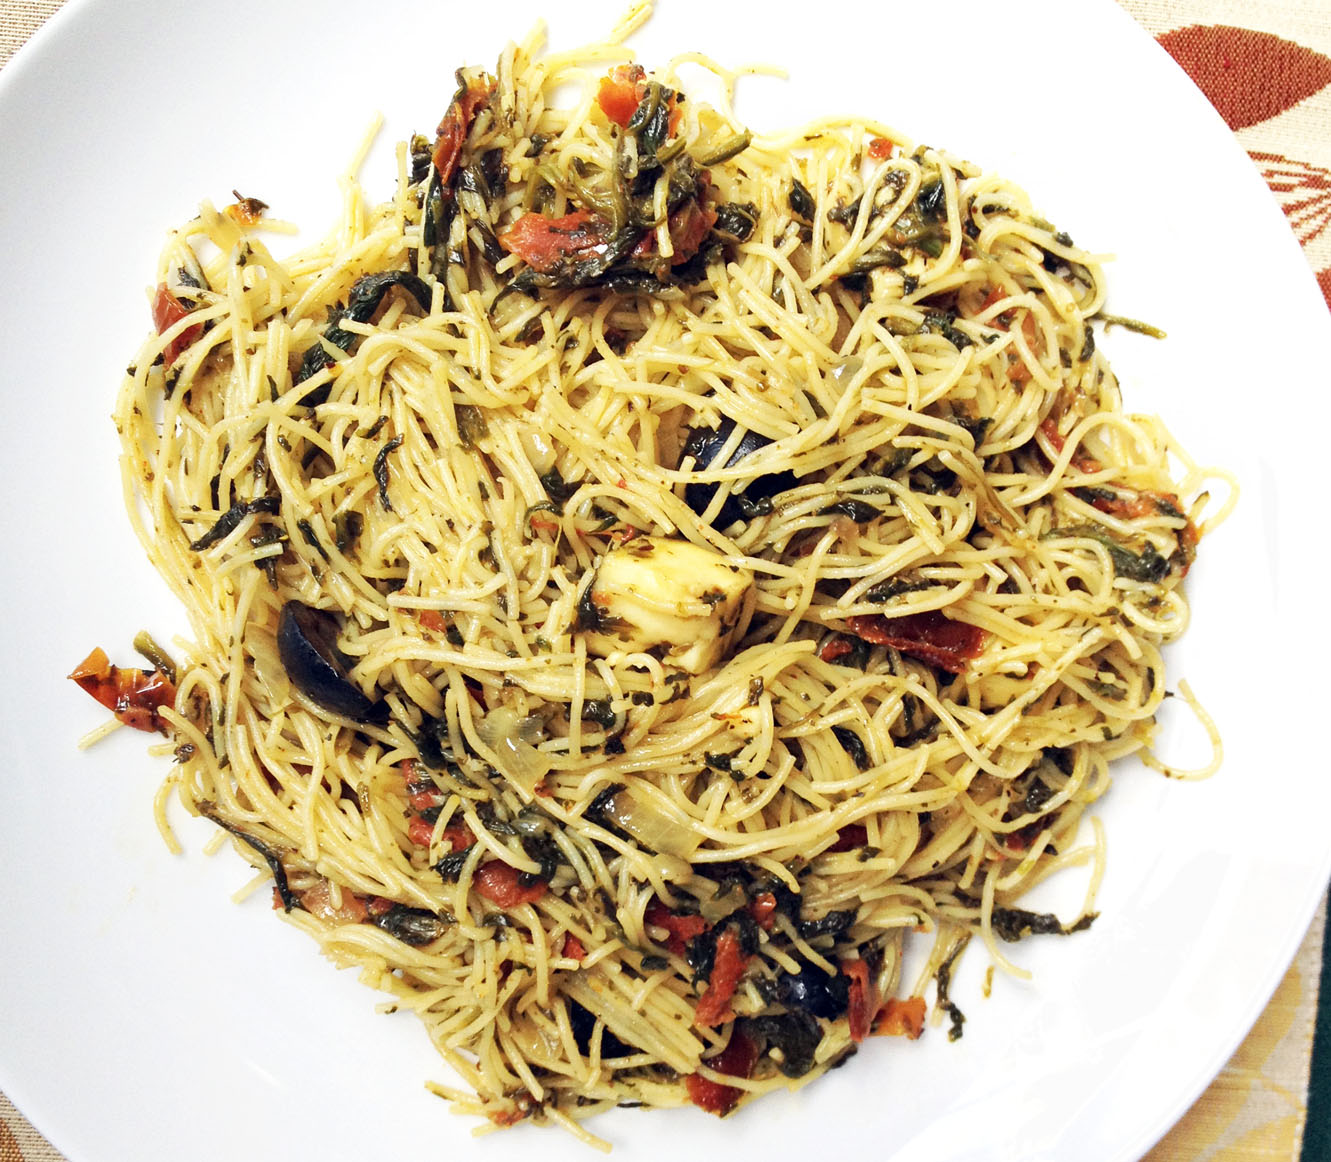 Spinach, Sun-dried Tomatoes, Angel Hair Pasta